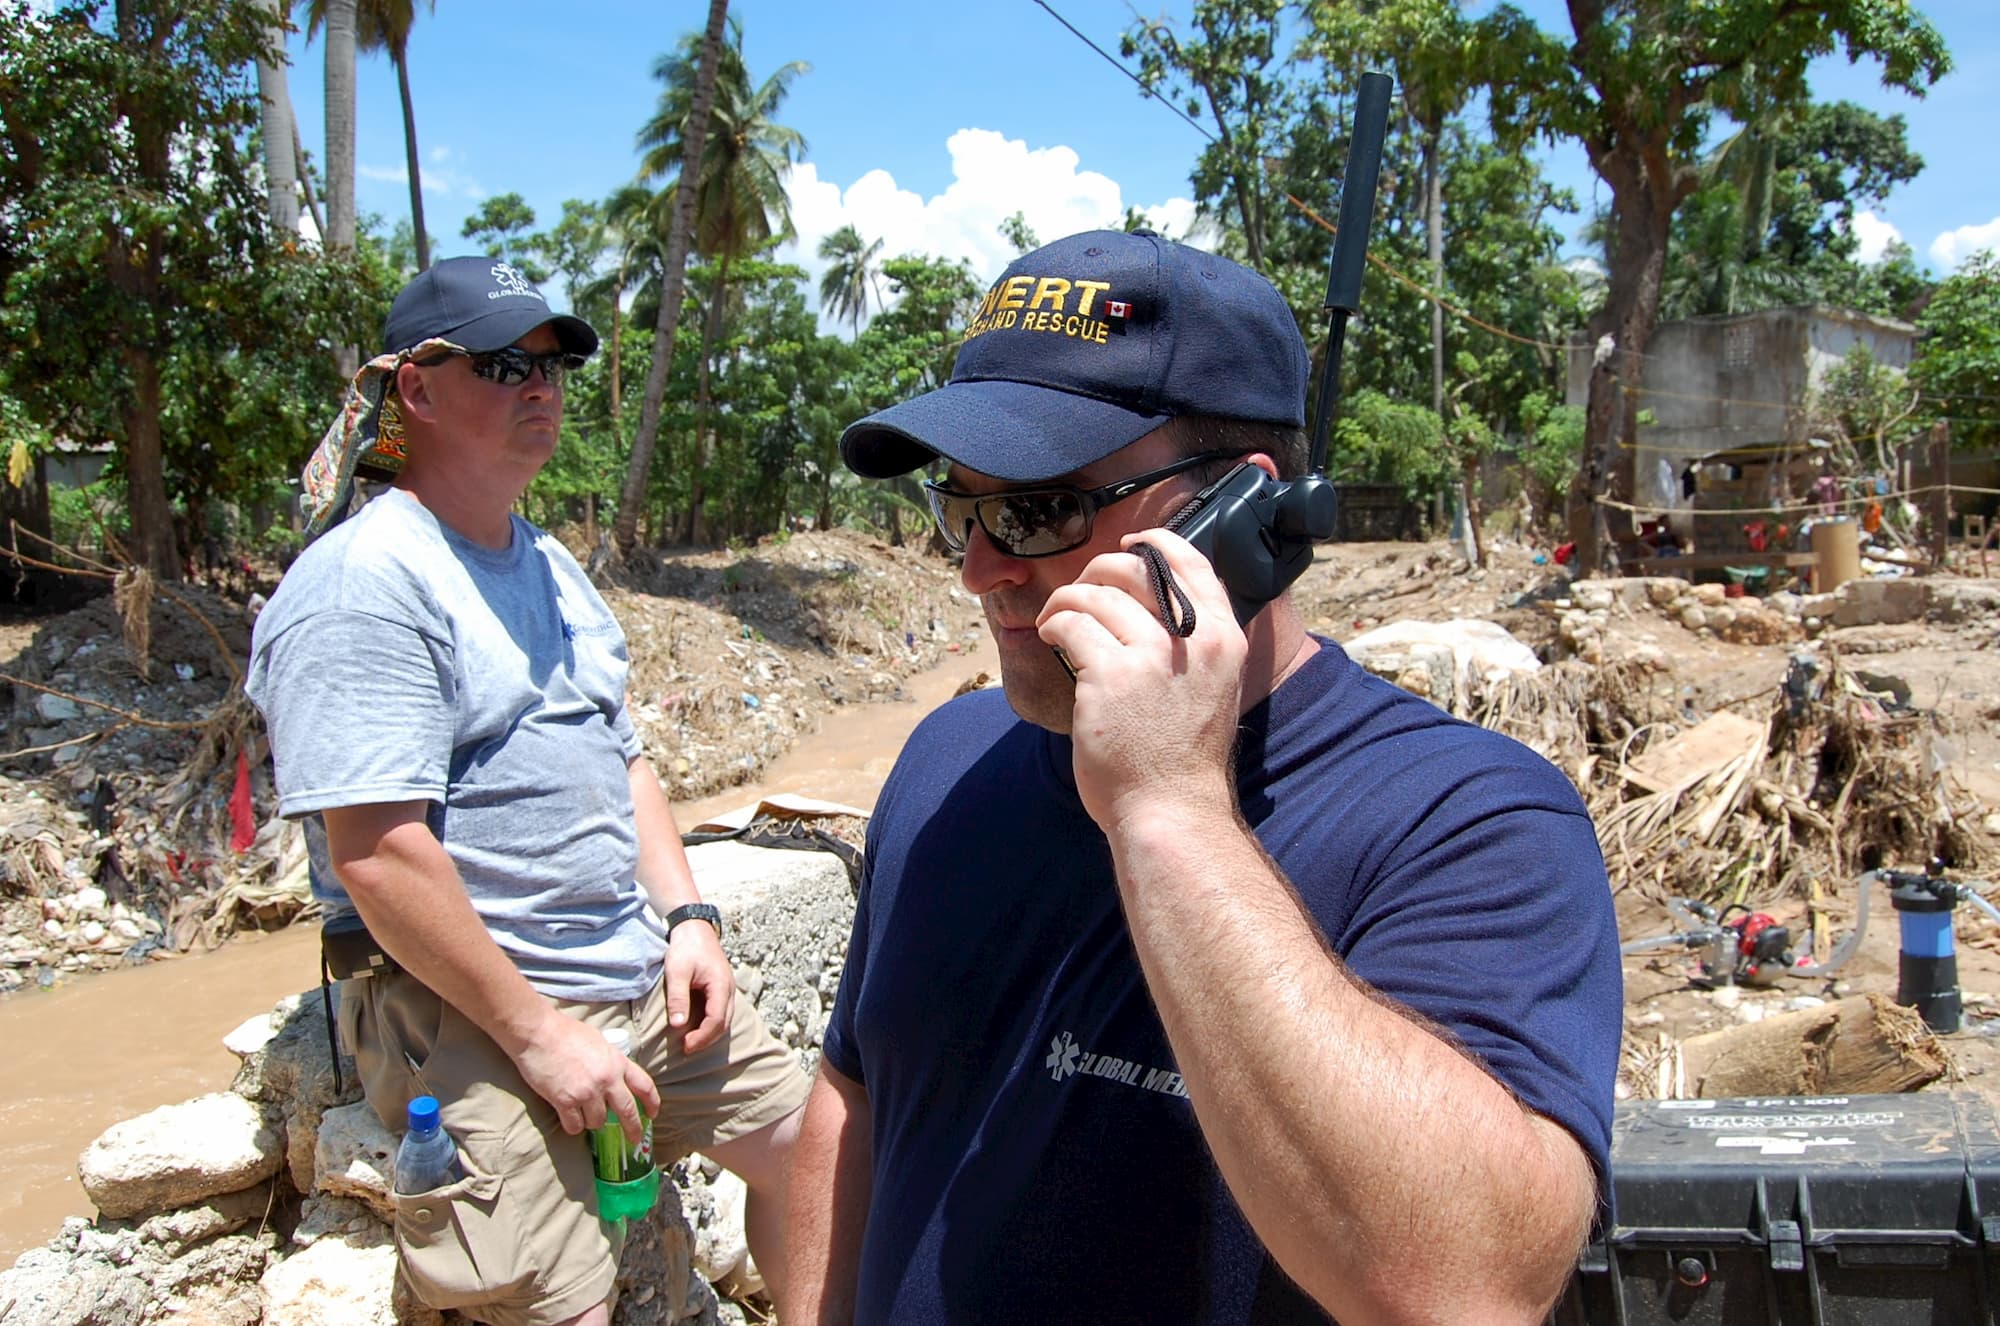 Tips for Using Your Satellite Phone